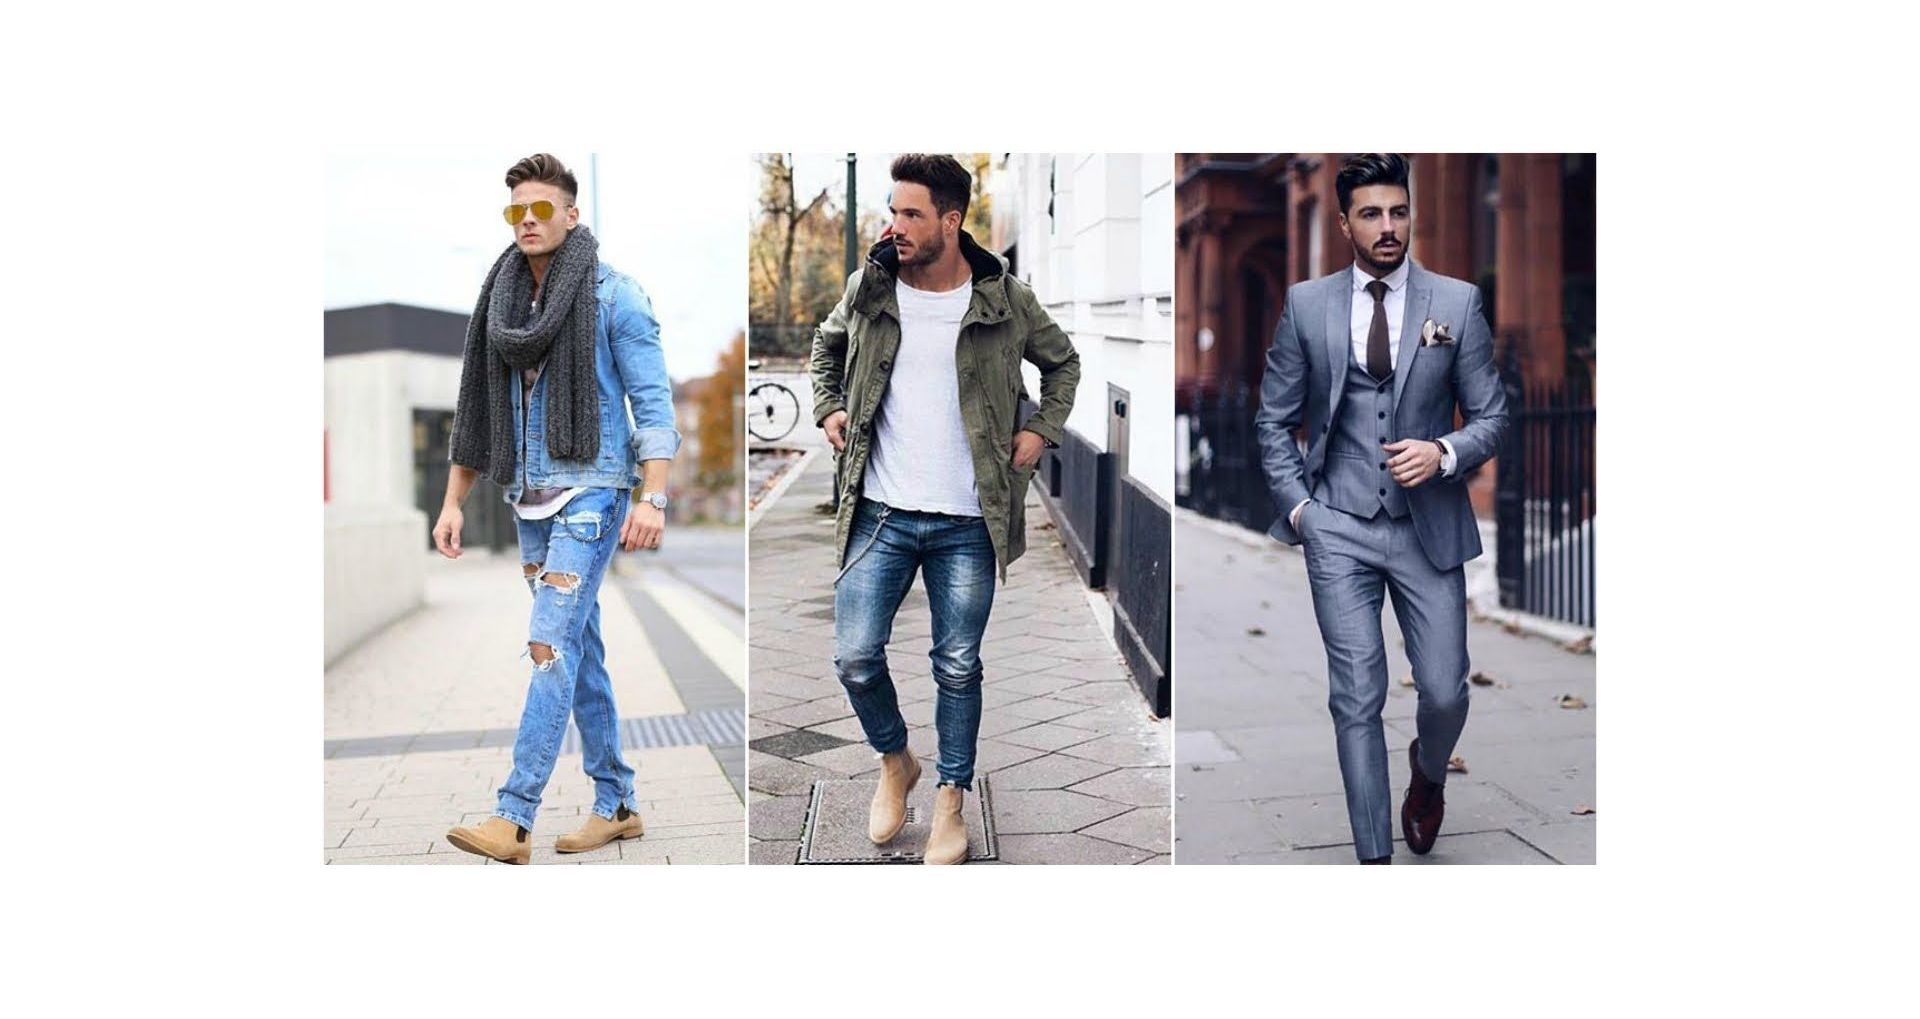 The latest clothing trends for men